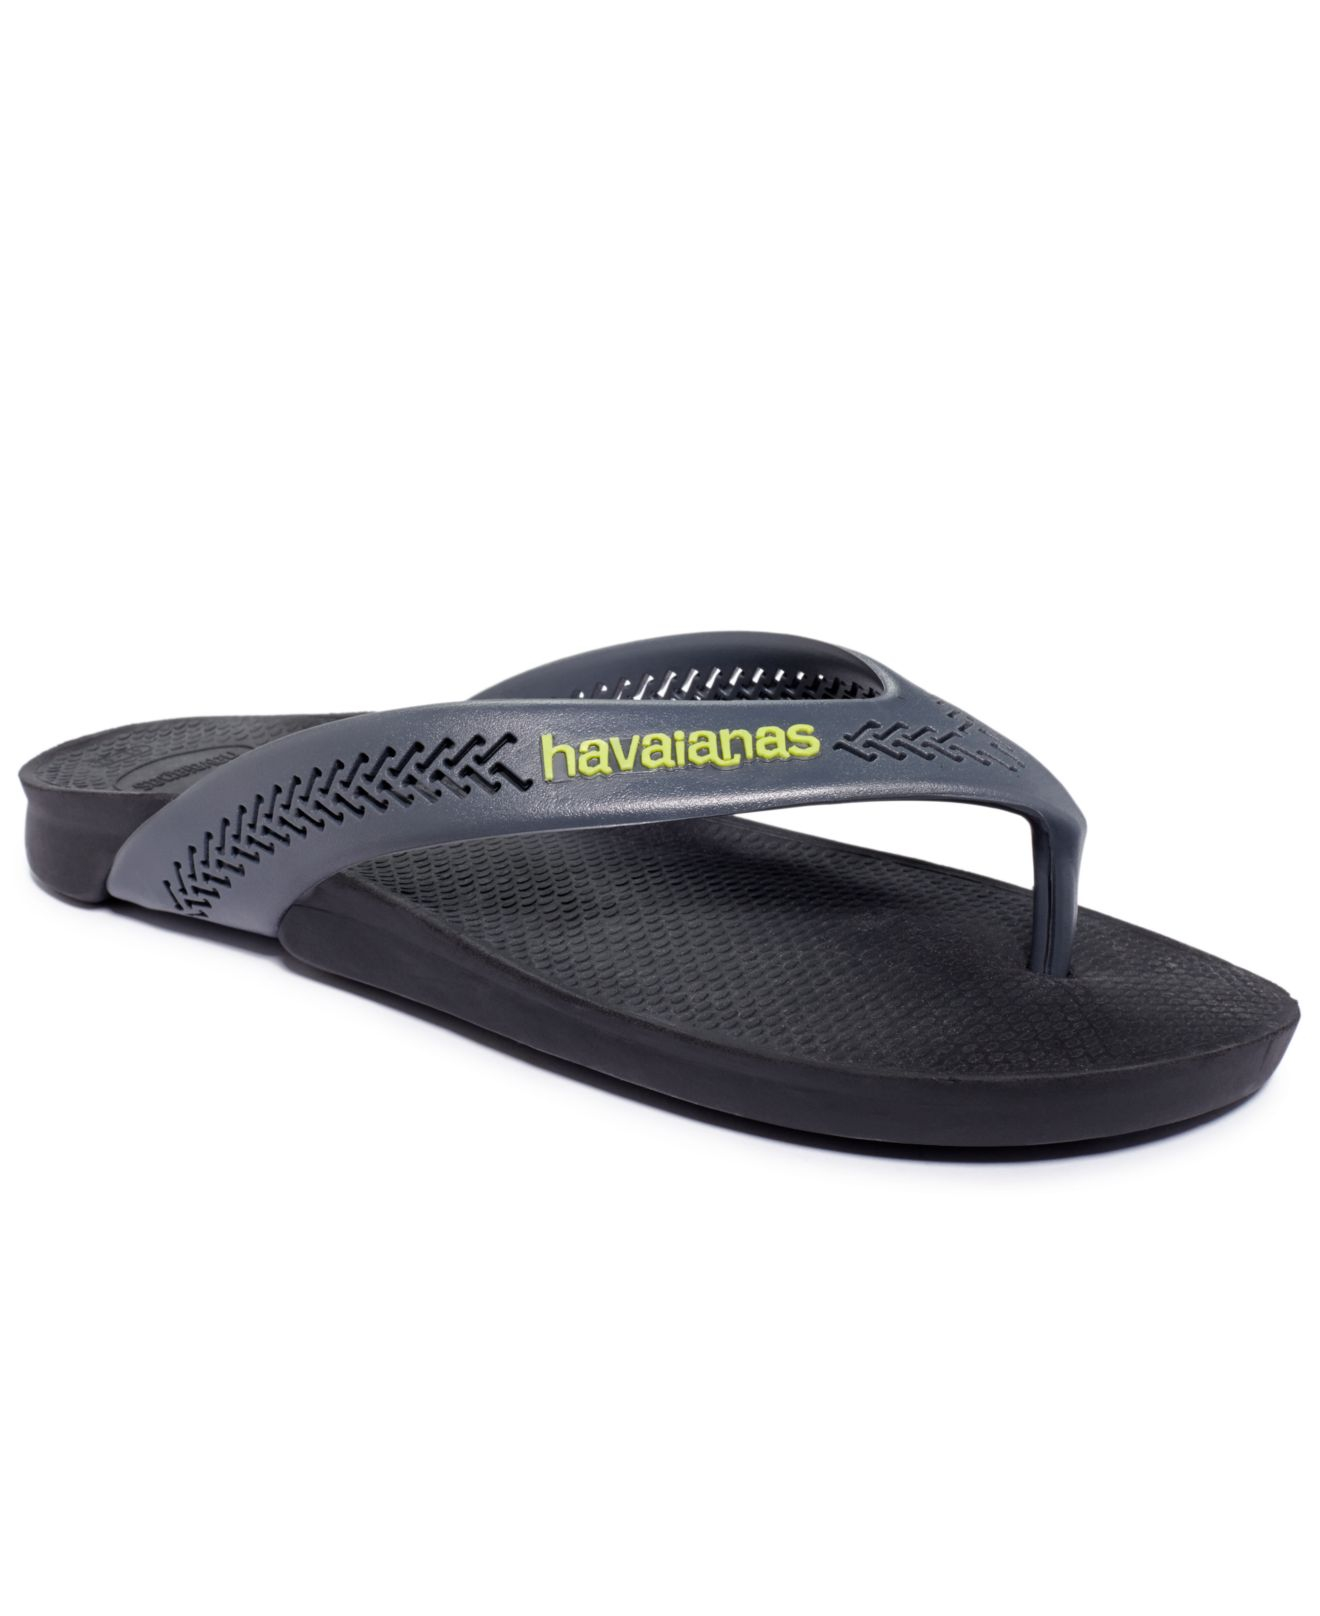 c86dd2fe948 Lyst - Havaianas Wide Sandals in Black for Men